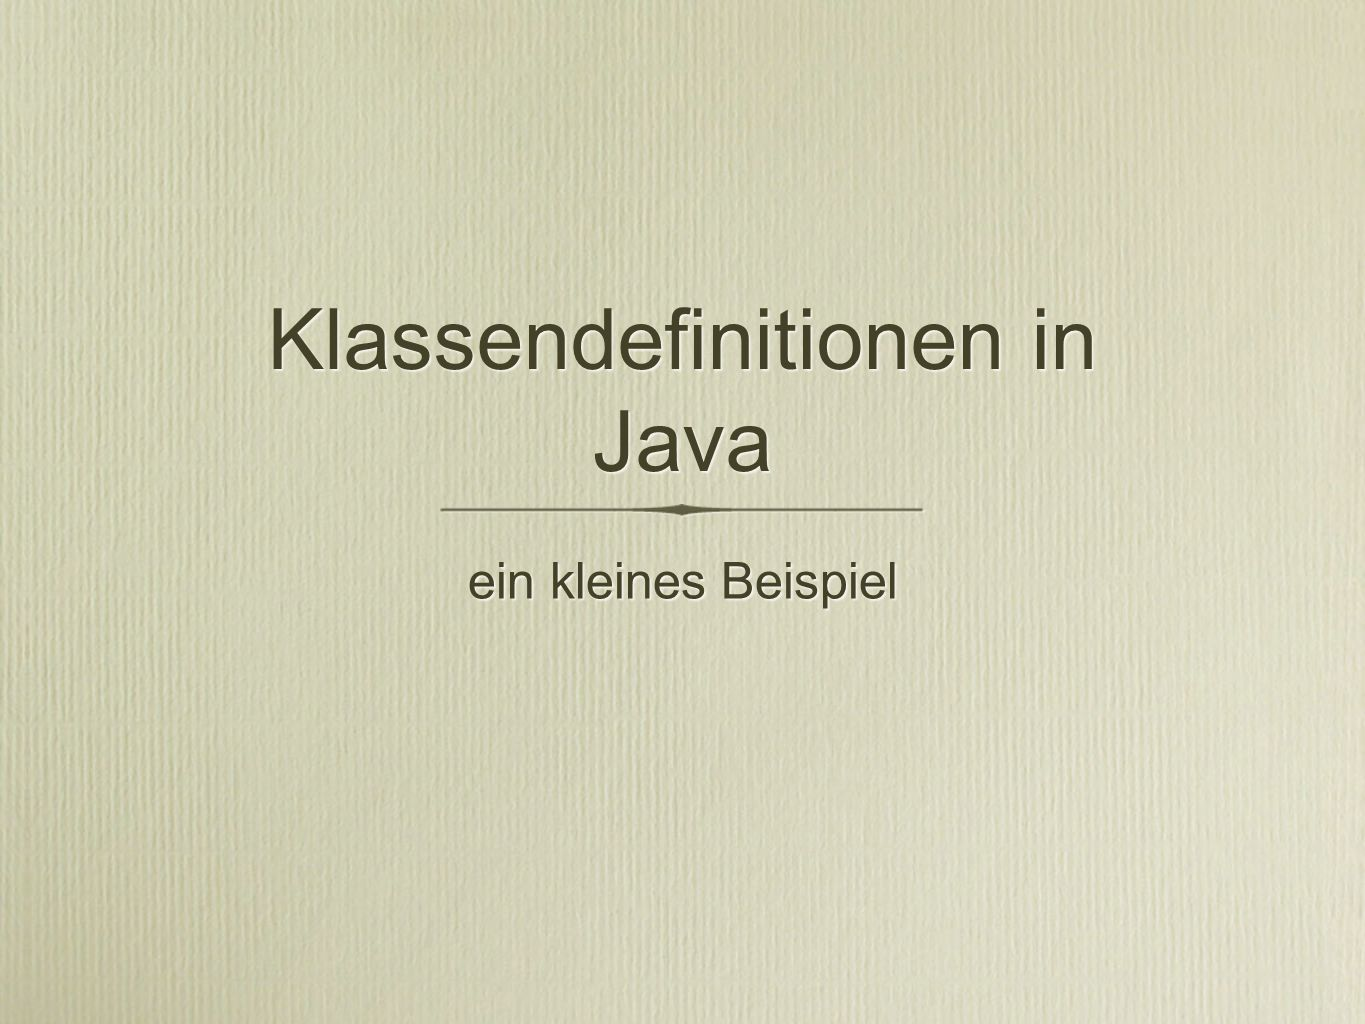 Klassendefinitionen in Java